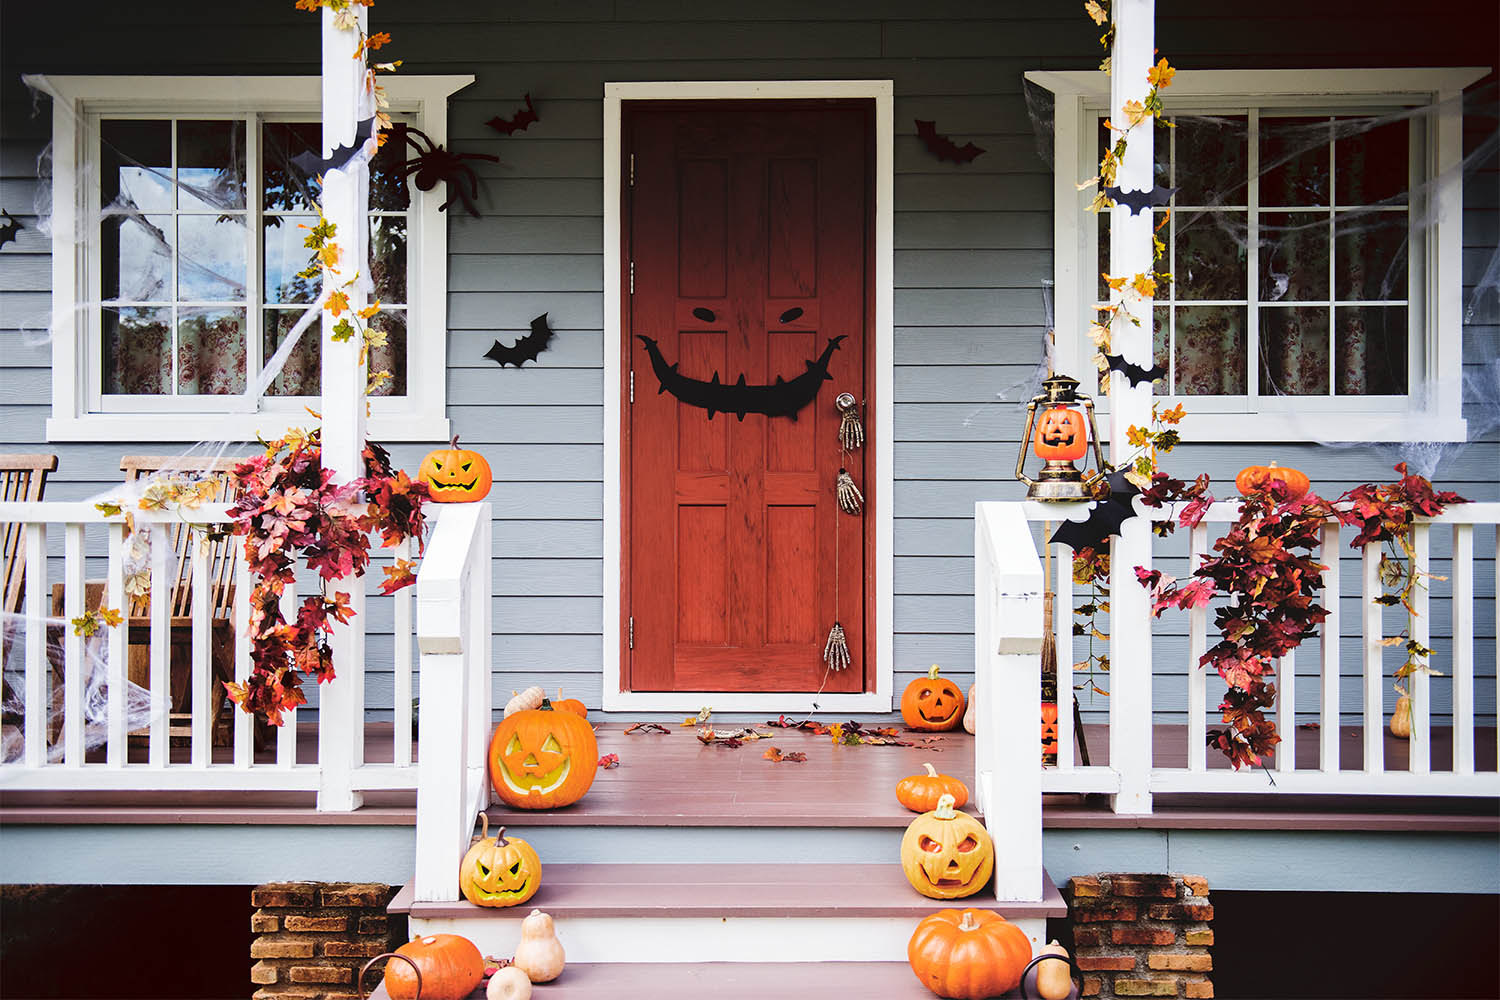 halloween-pumpkins-and-decorations-outside-